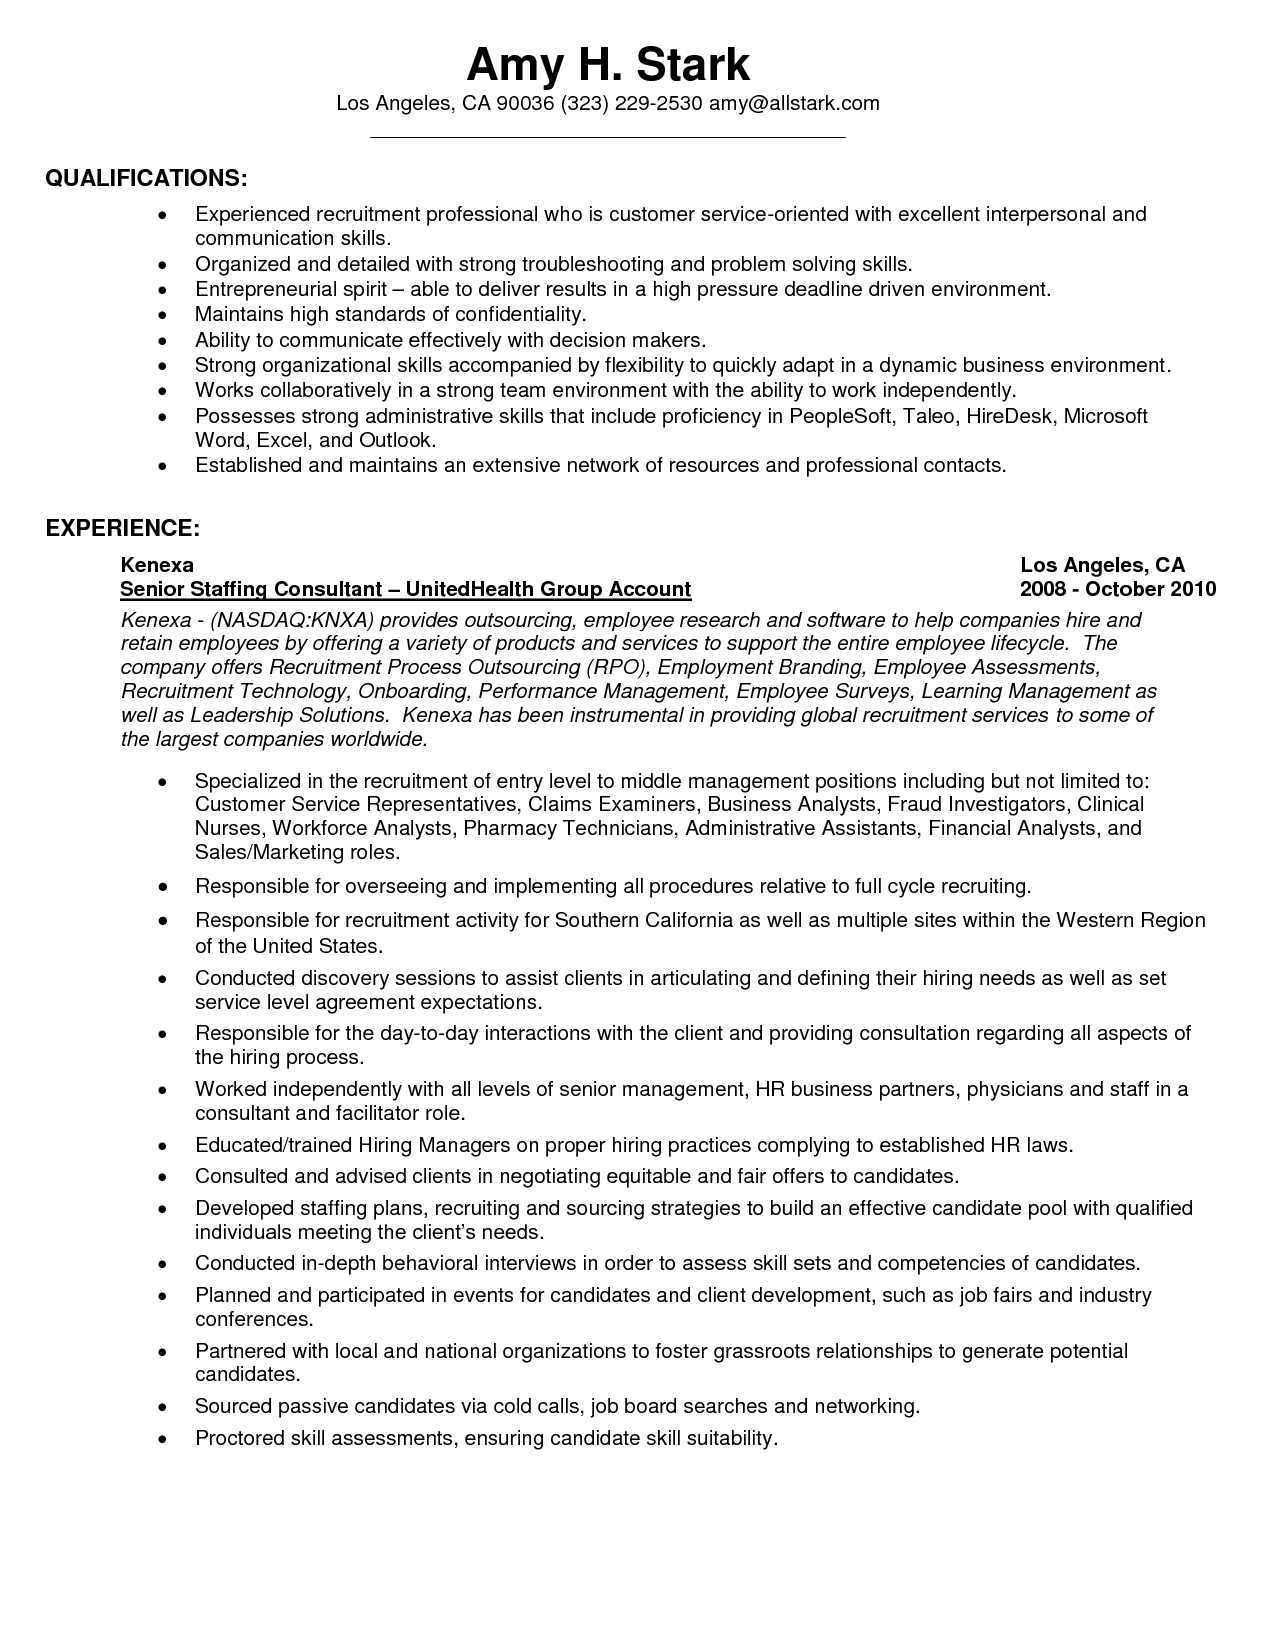 Resume Customer Service Skills Glamorous Kfc Jobs Food And Restaurant Resume Sample Samplebusinessresume 2018